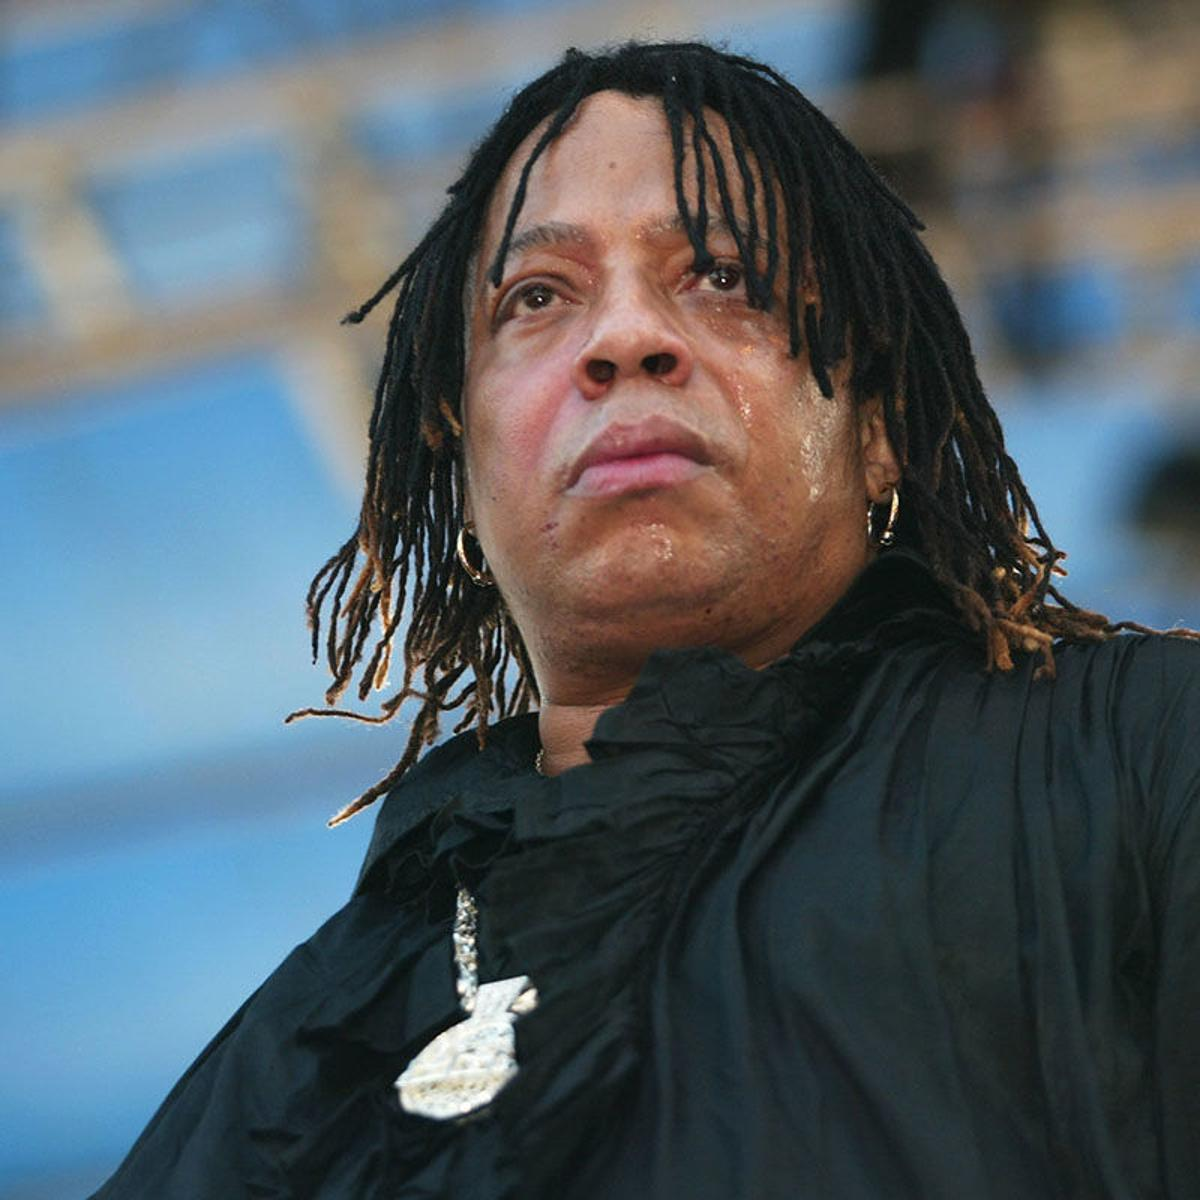 Rick James Accused Of Raping 15 Year Old In Child Victims Act Lawsuit Local News Buffalonews Com